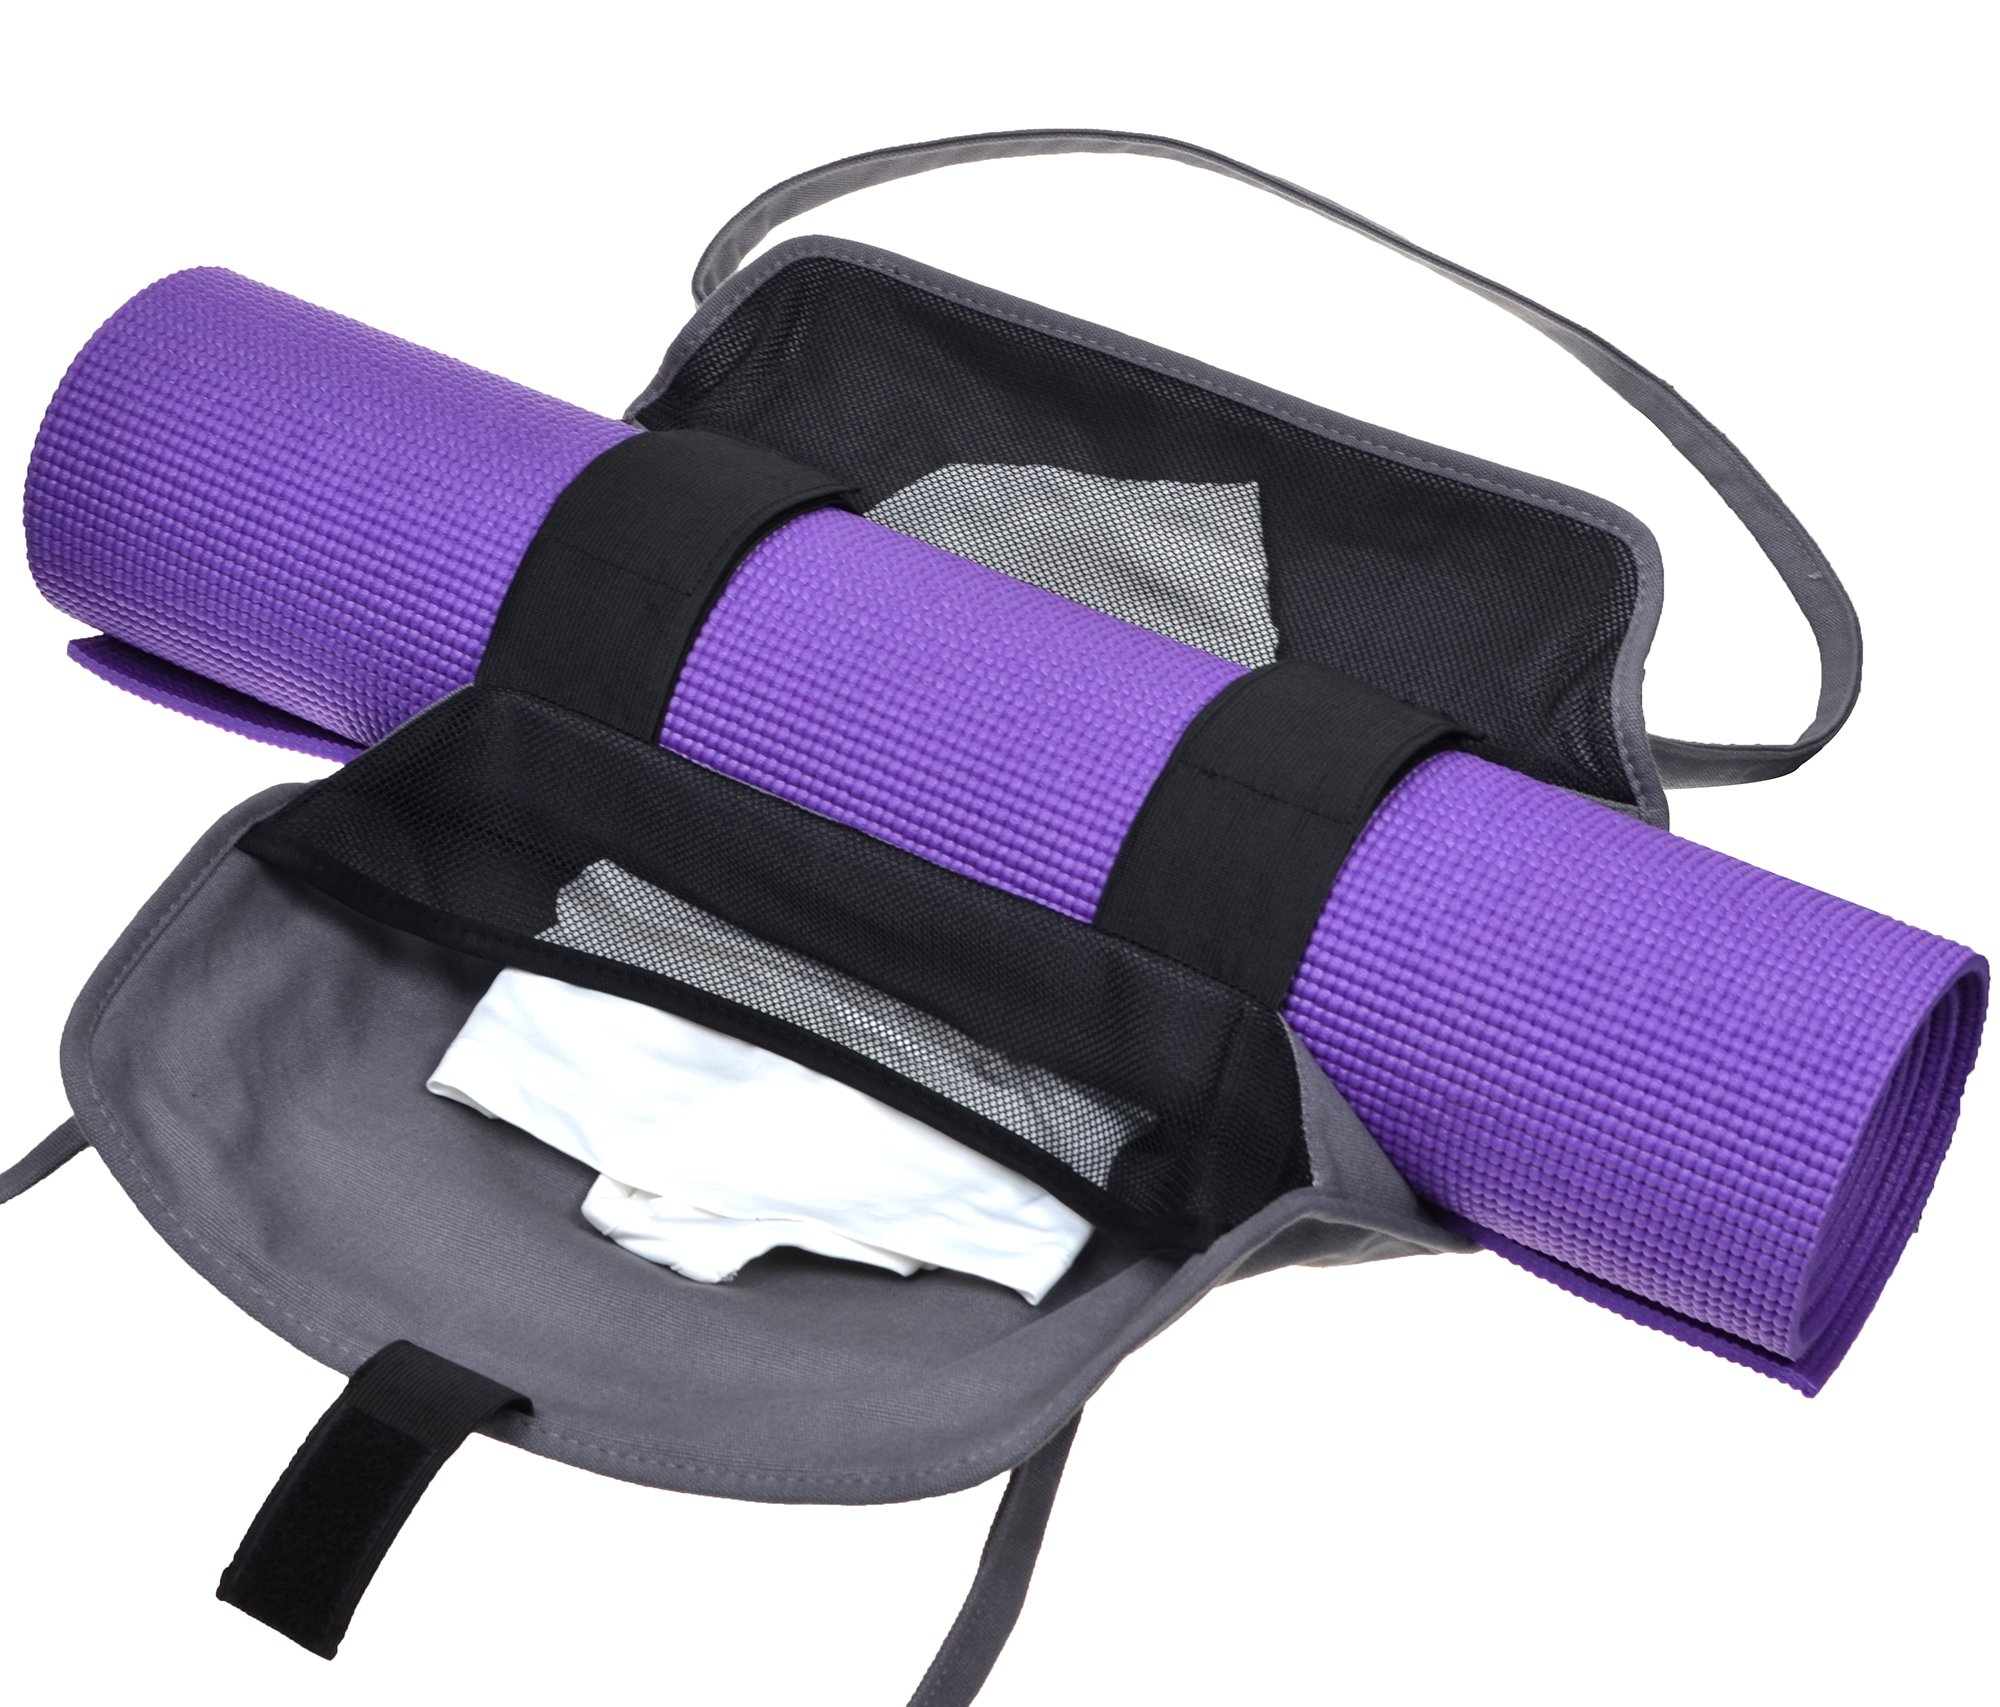 Cosmos Exercise Yoga Mat Carrying Shoulder Strap Bag with Internal and Outside Storge Pocket (Yoga Mat is NOT Included) by Cosmos (Image #4)